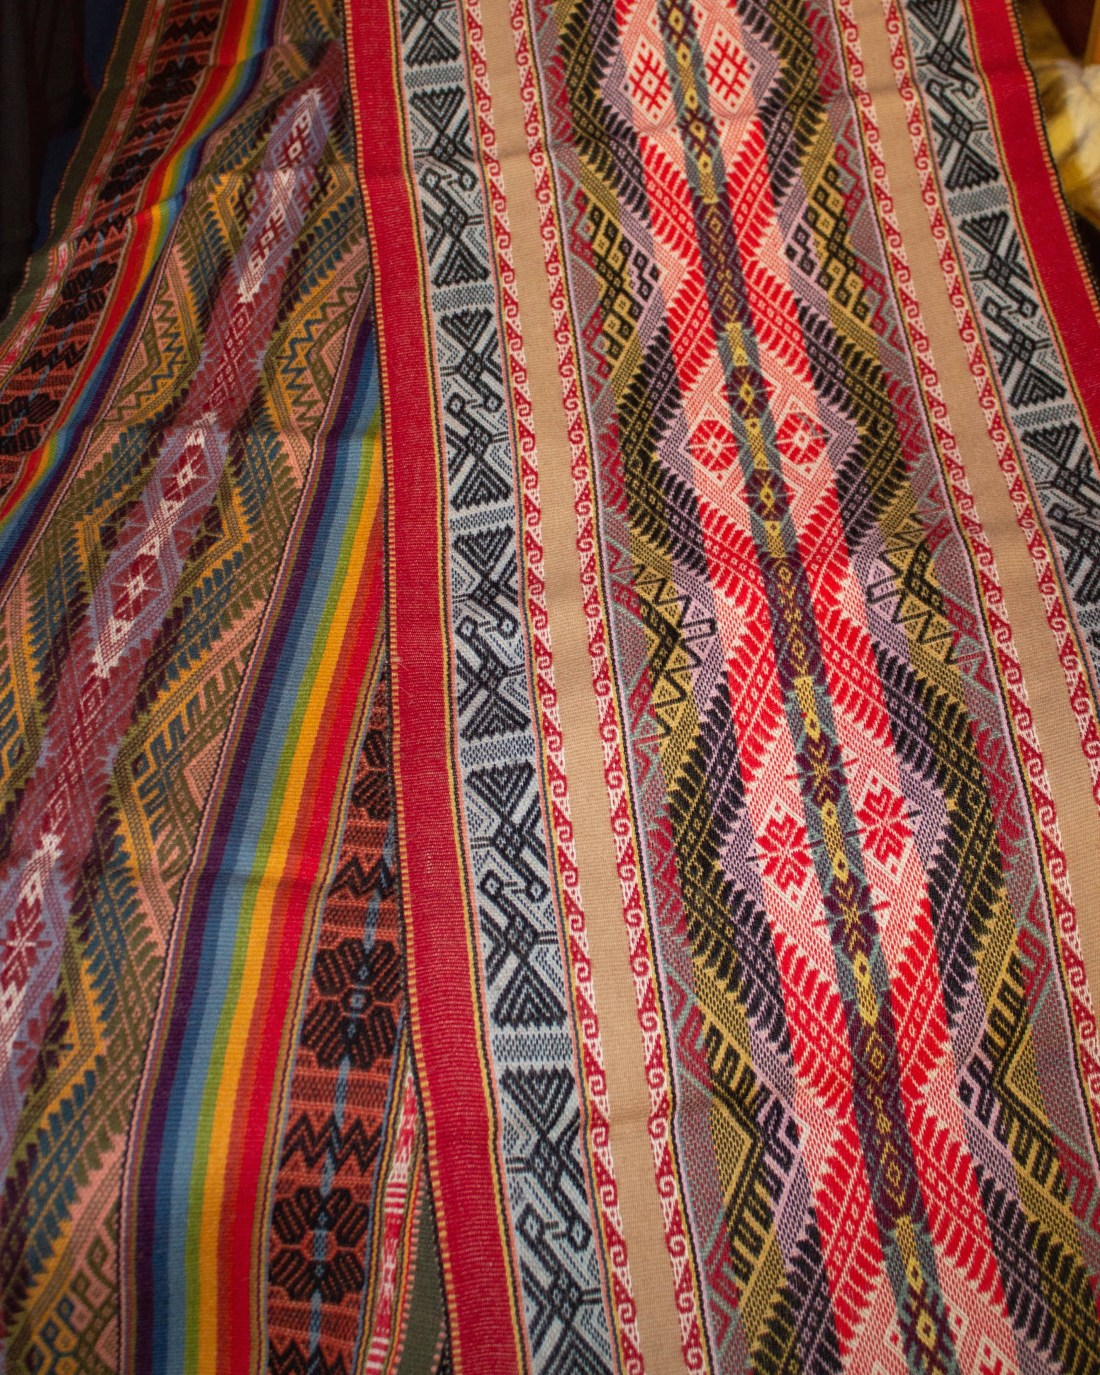 Cultural heritage and textiles in Chinchero Cusco 02